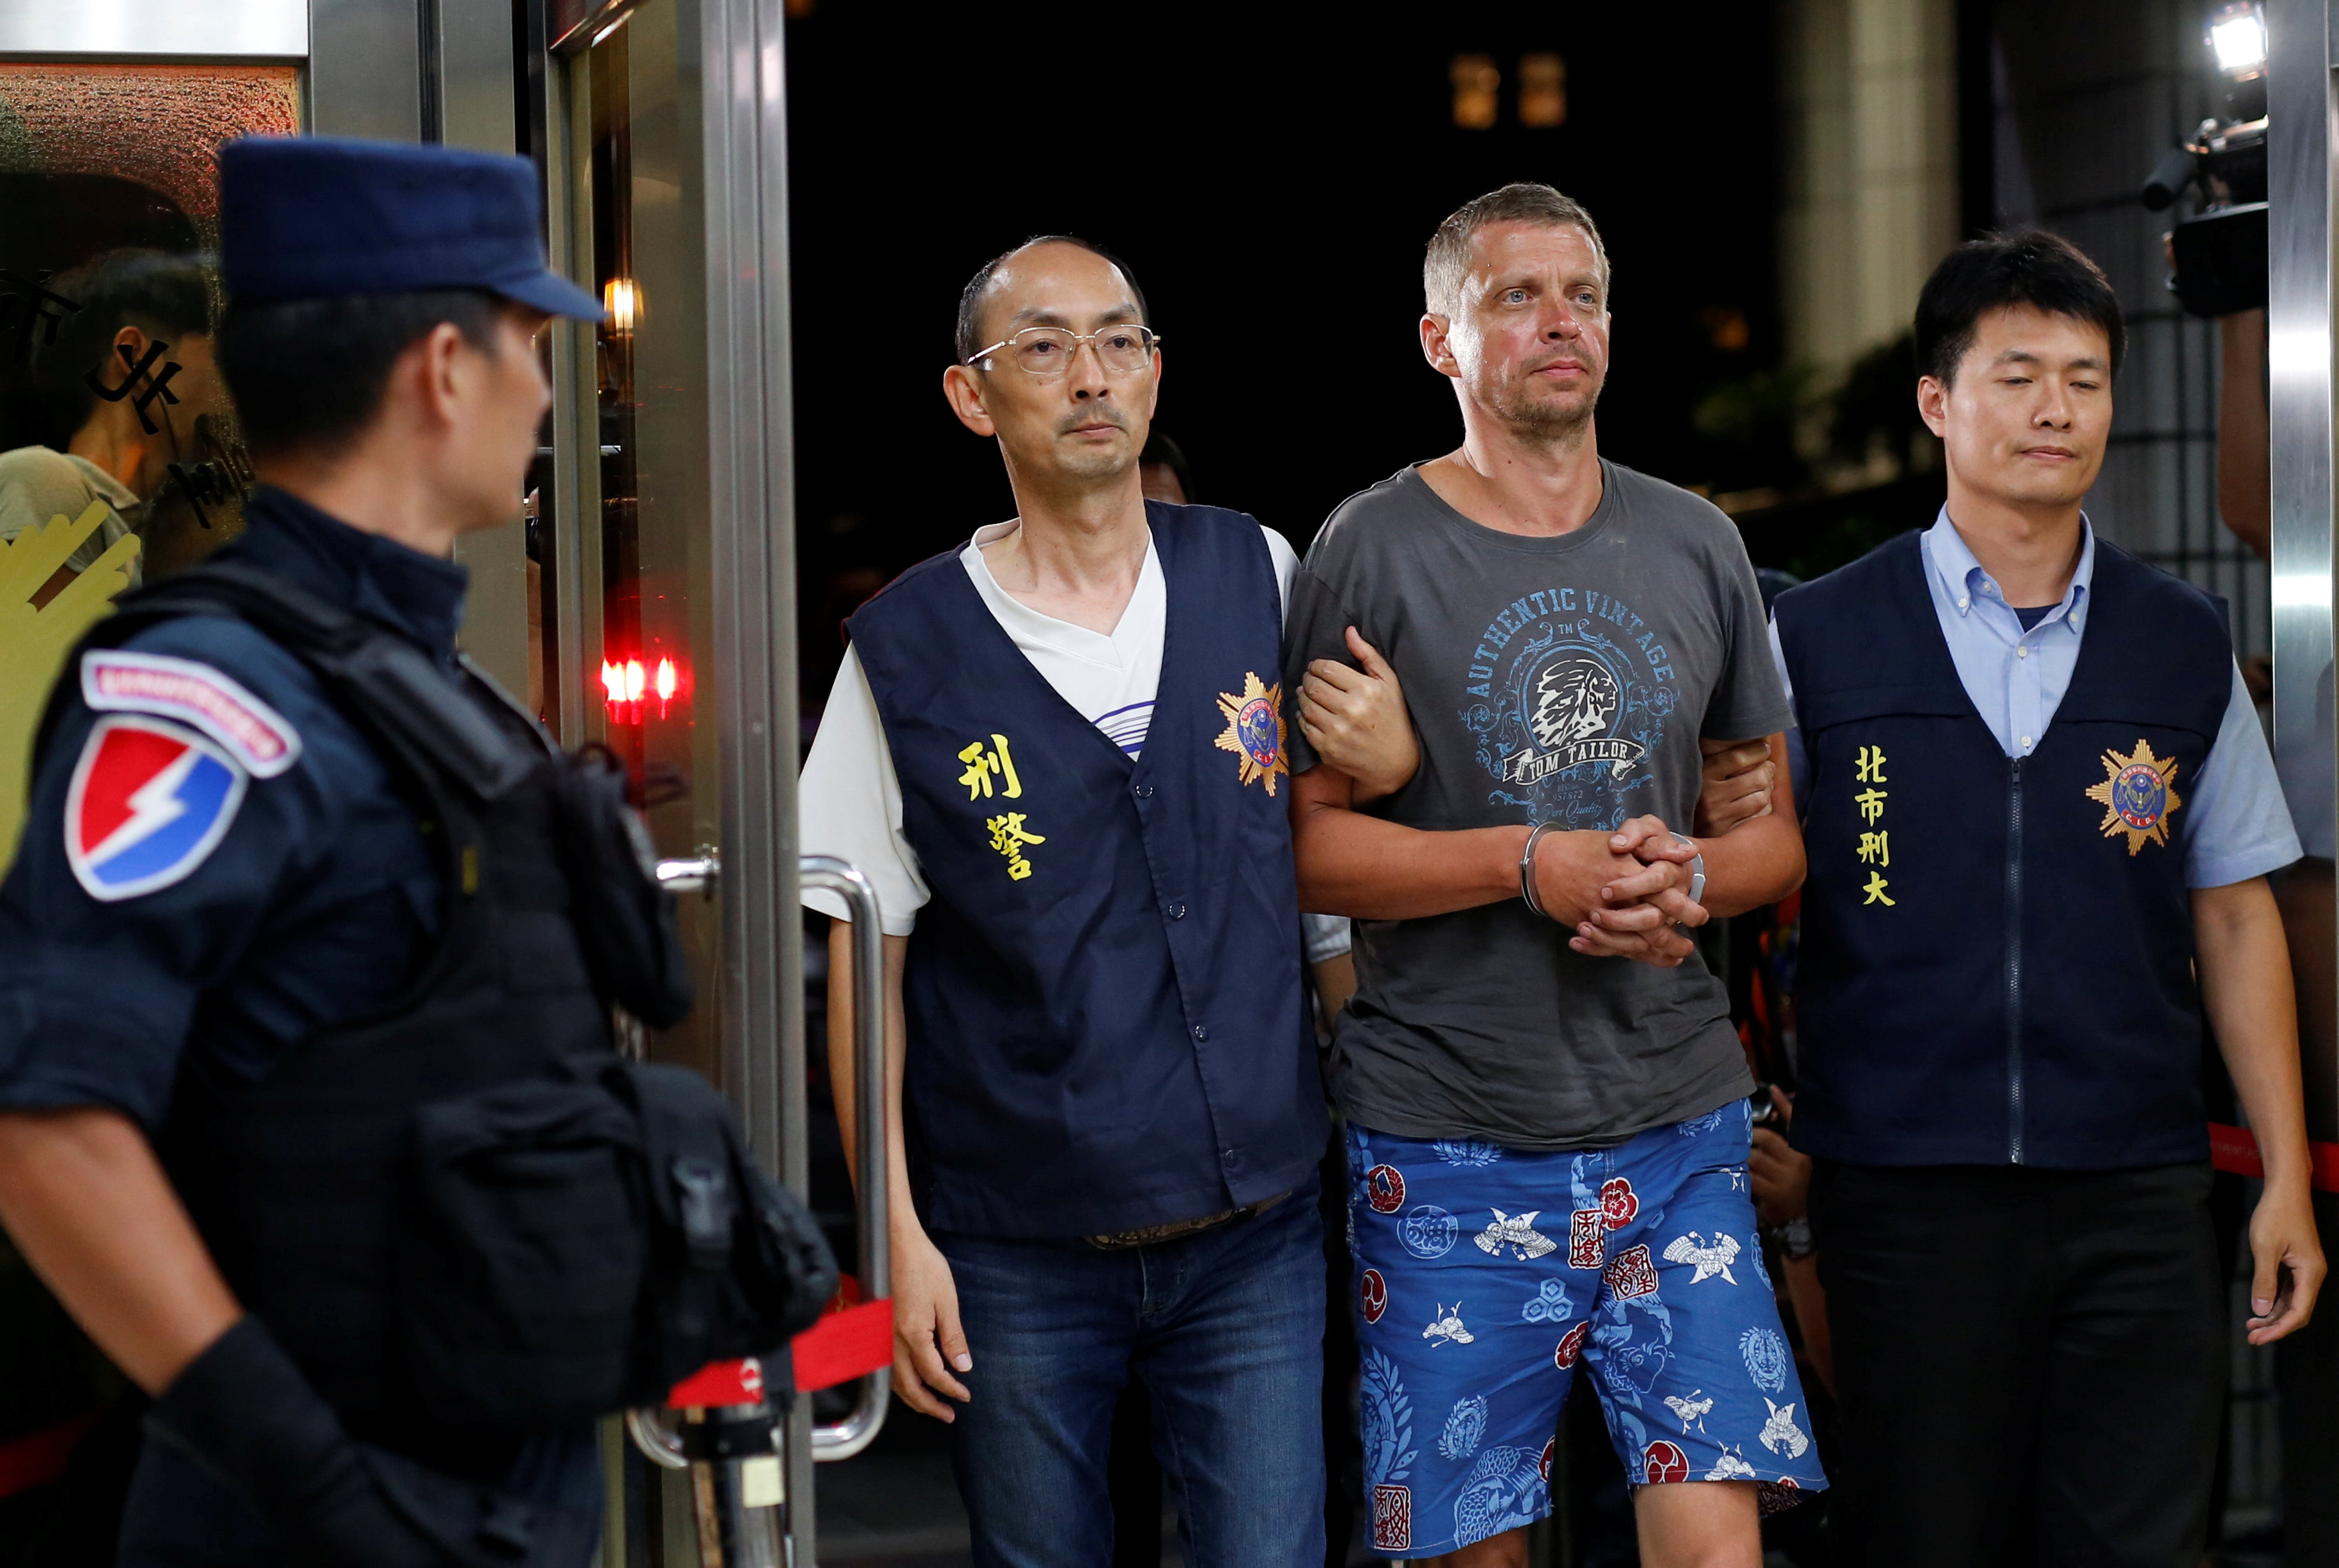 Andrejs Peregudovs from Latvia, who is suspected of stealing from an automated teller machine, is escorted at the police station in Taipei Sunday.   REUTERS